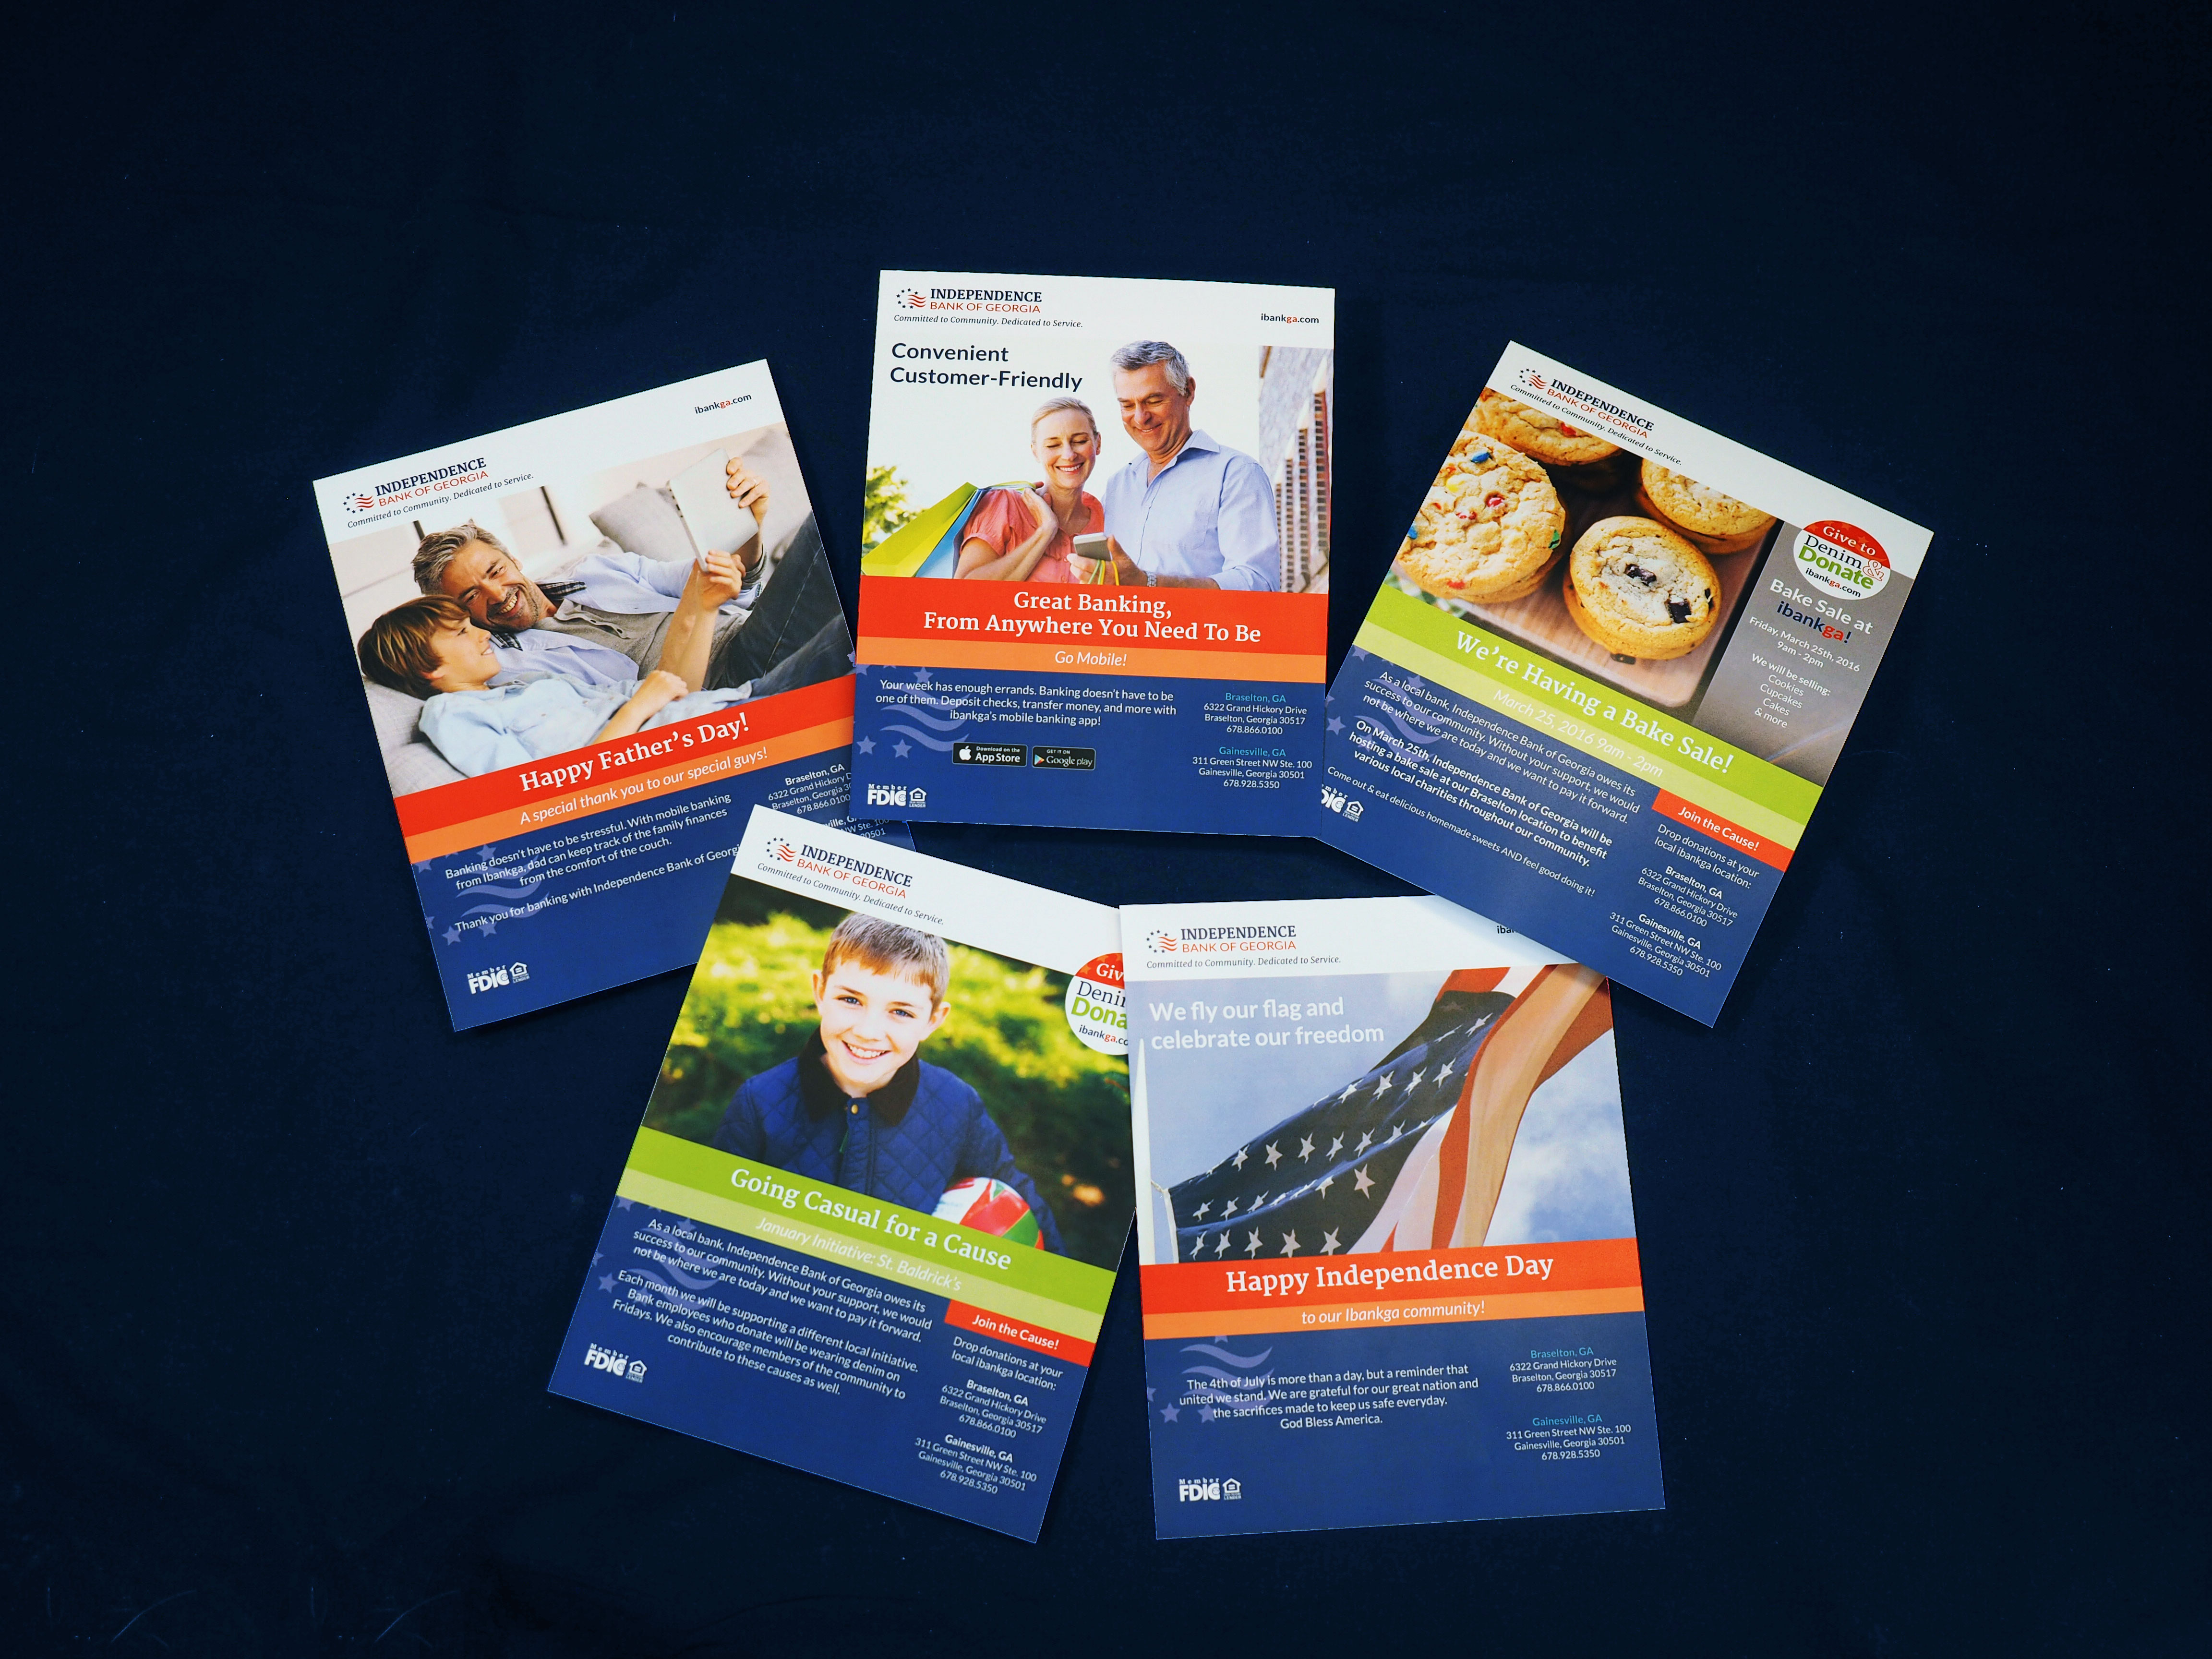 Corporate Branding Case Solution - HBS Case Study ...